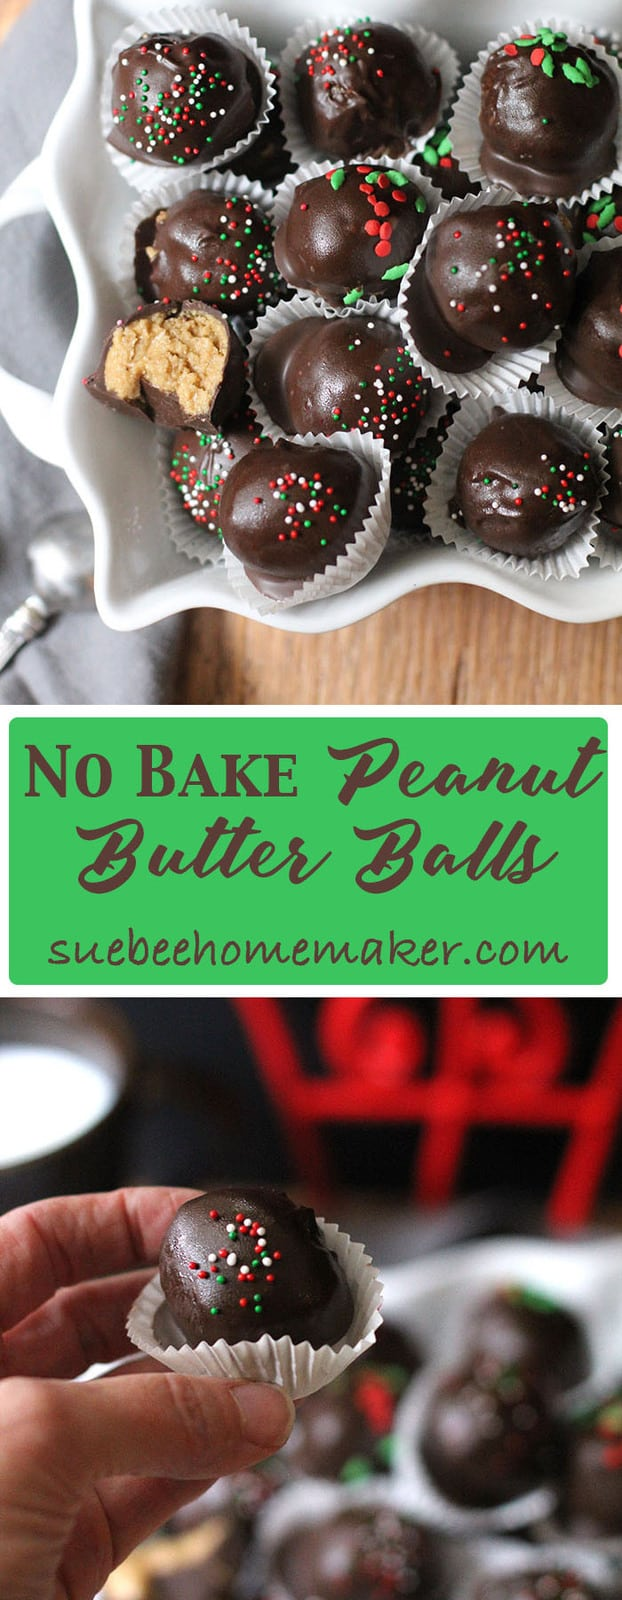 My simple No Bake Peanut Butter Balls are amazingly creamy in the inside, and slightly crunchy on the outside. They make a perfect holiday treat! | suebeehomemaker.com